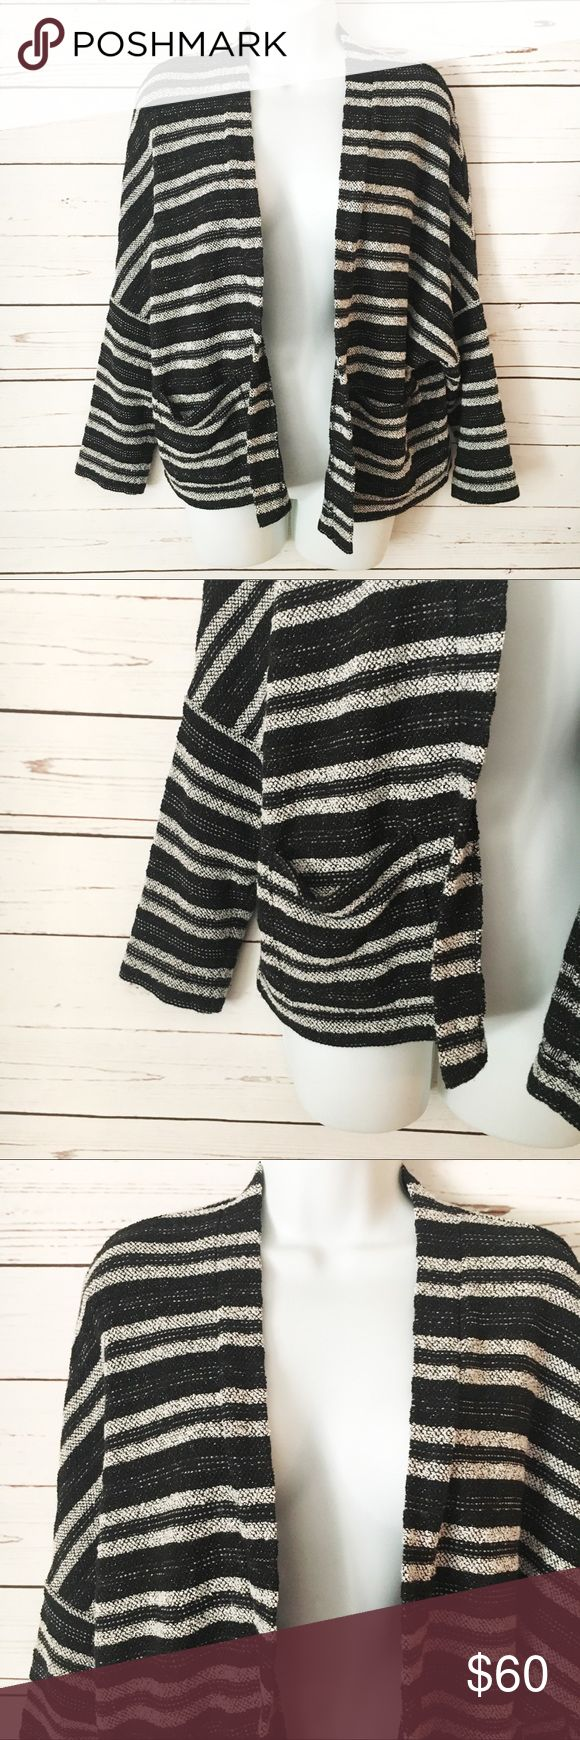 Madewell Striped Cardigan EUC Cardigan. Two pockets, open concept. Fits up to a M (tag size XS/S). Black and white stripe pattern. Medium weight - would definitely keep you warm. A perfect layering piece! Madewell Sweaters Cardigans